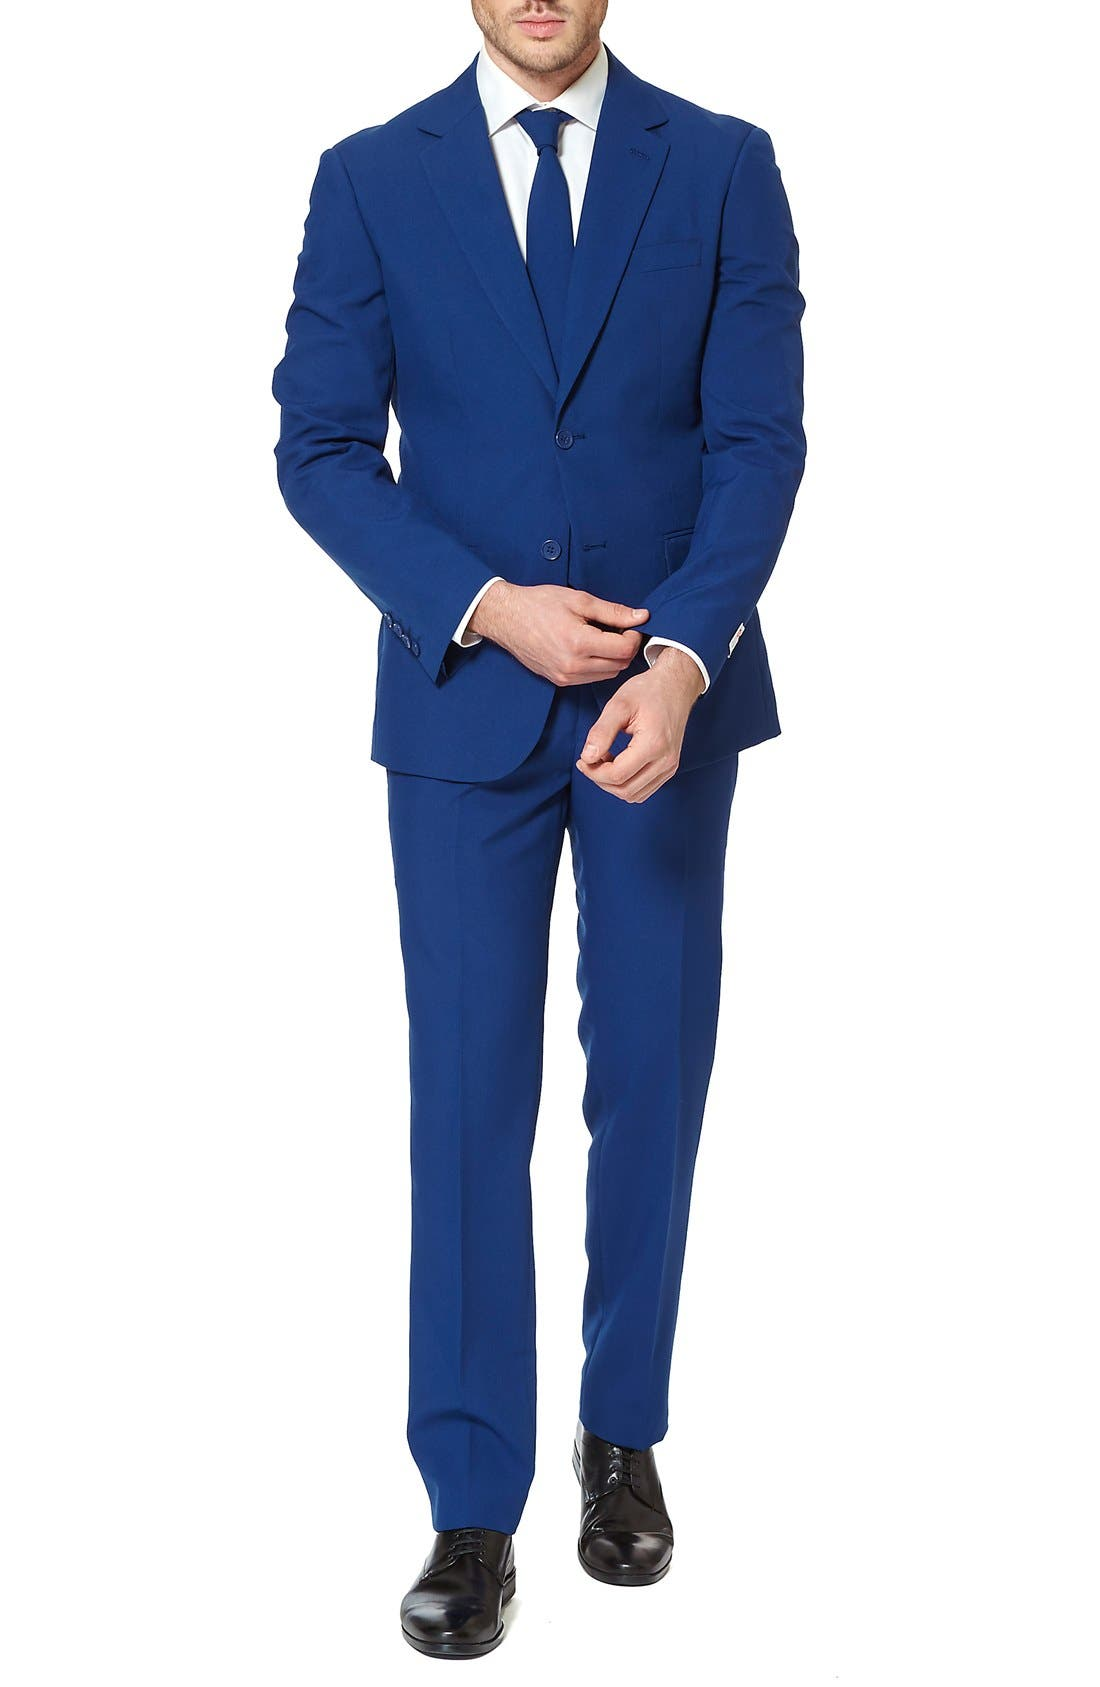 'Navy Royale' Trim Fit Two-Piece Suit with Tie,                             Alternate thumbnail 4, color,                             Navy